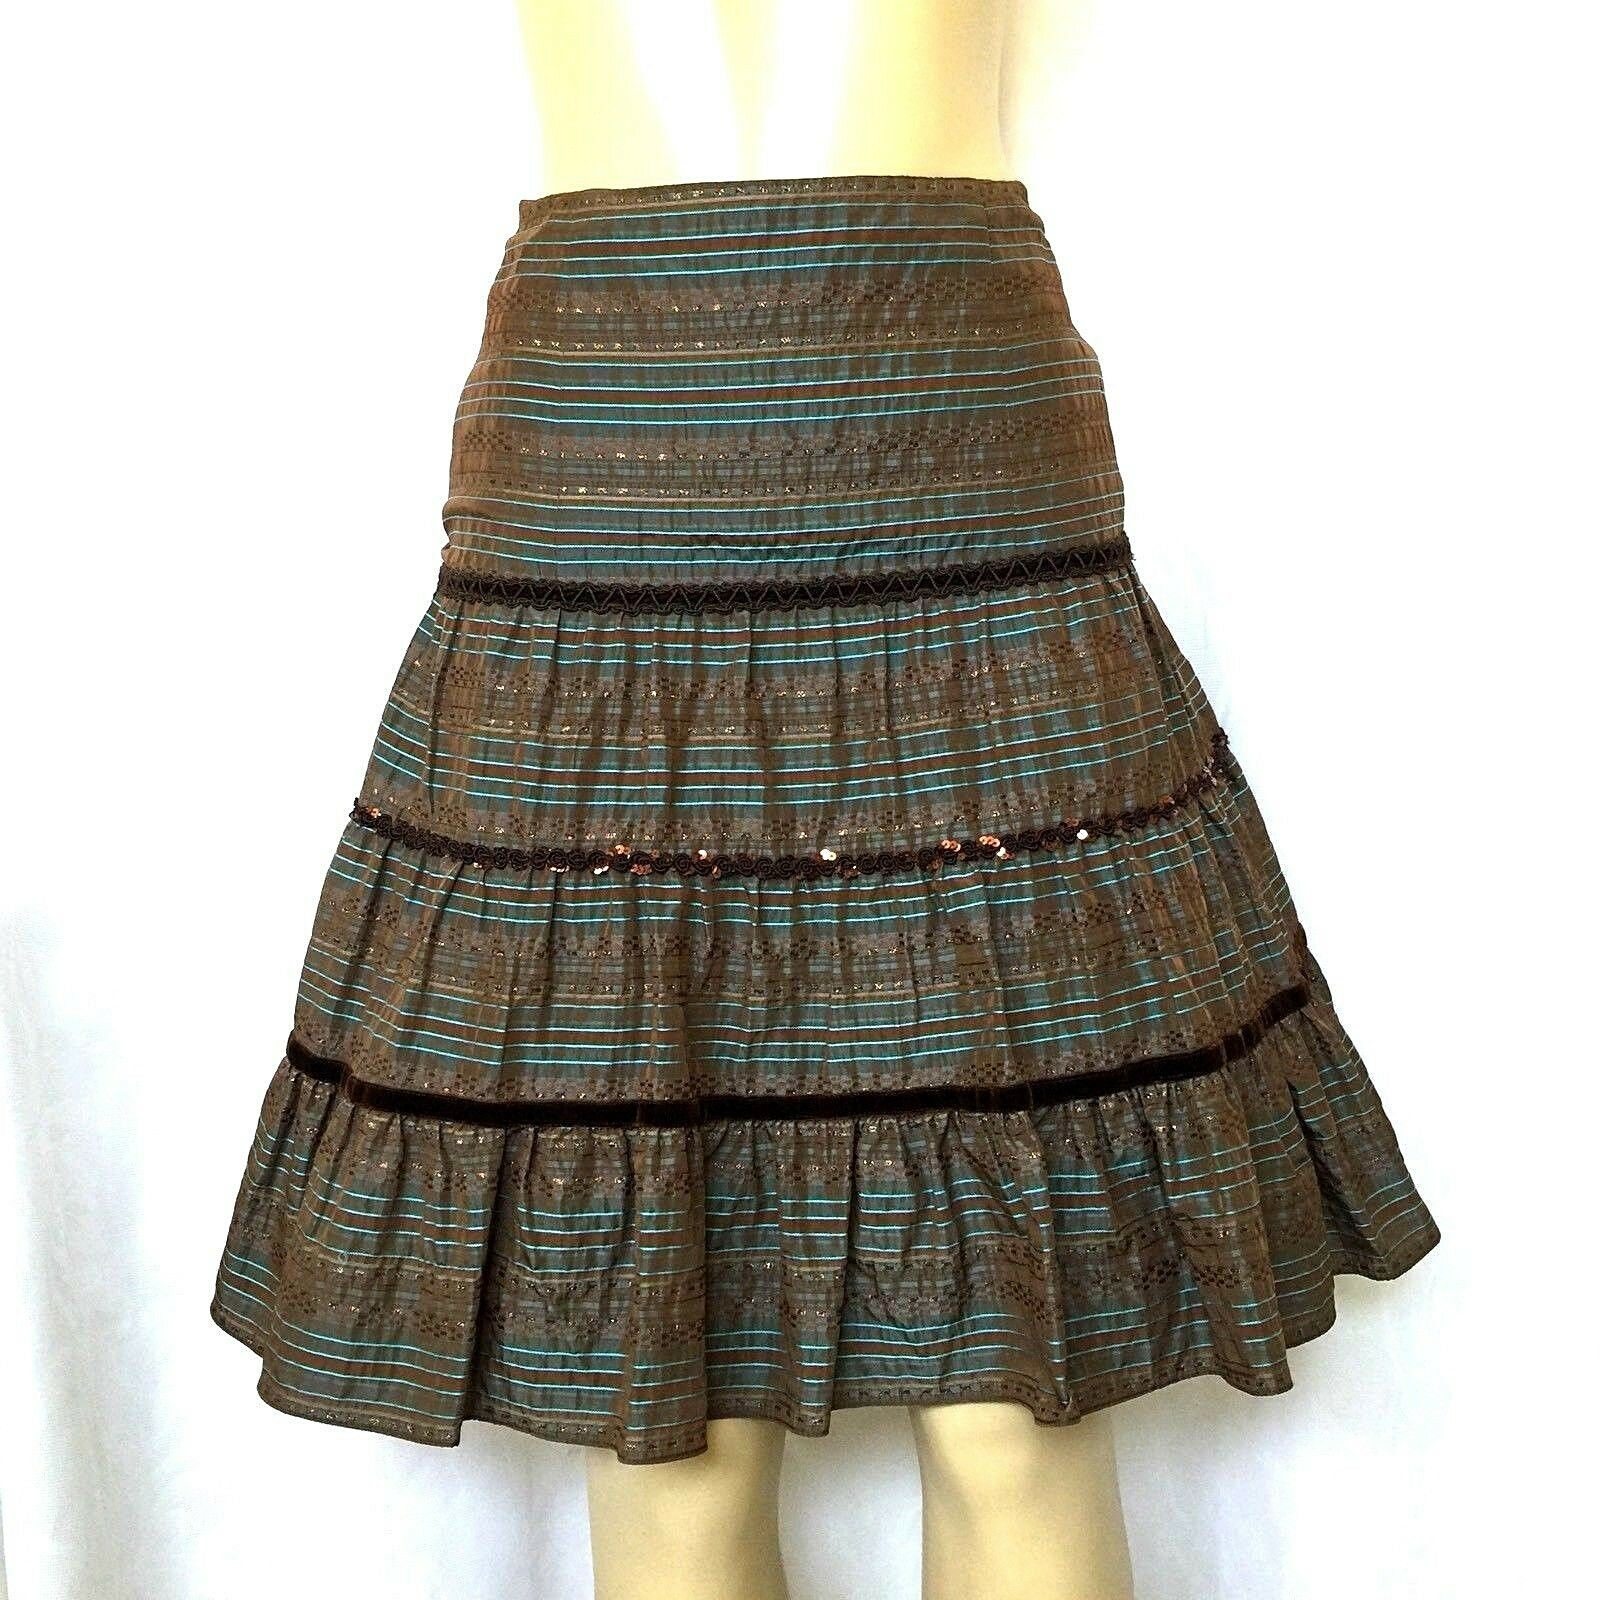 Nanette Lepore Skirt A line Striped Brown bluee Sequin Boho S 4 Knee Length Lined